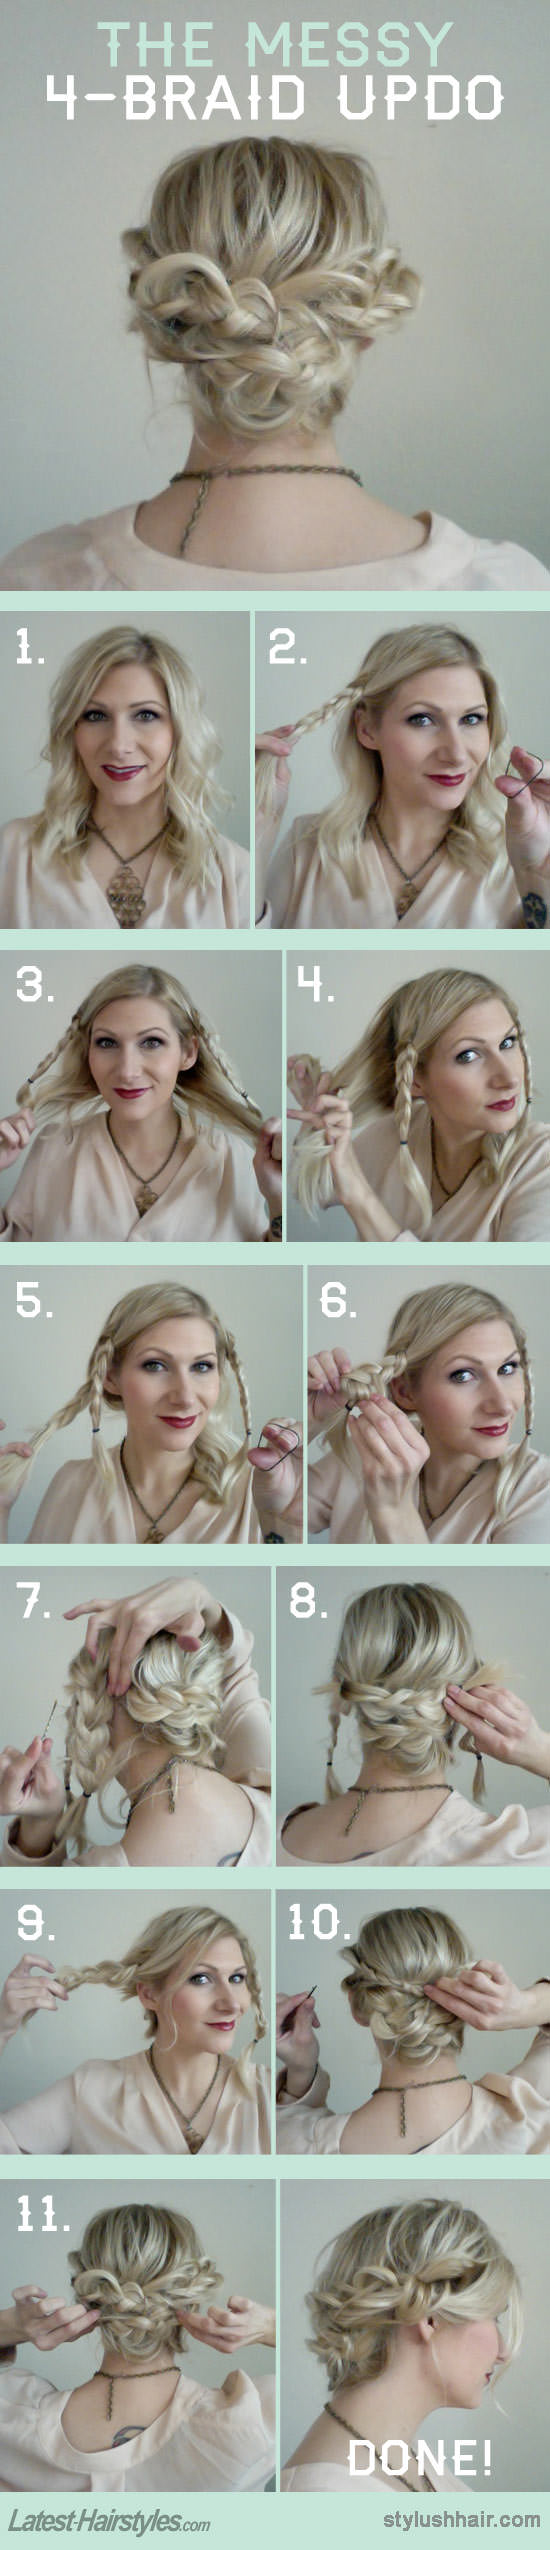 Wear a braided updo for the season braided updo tutorials pretty four braid updo solutioingenieria Image collections